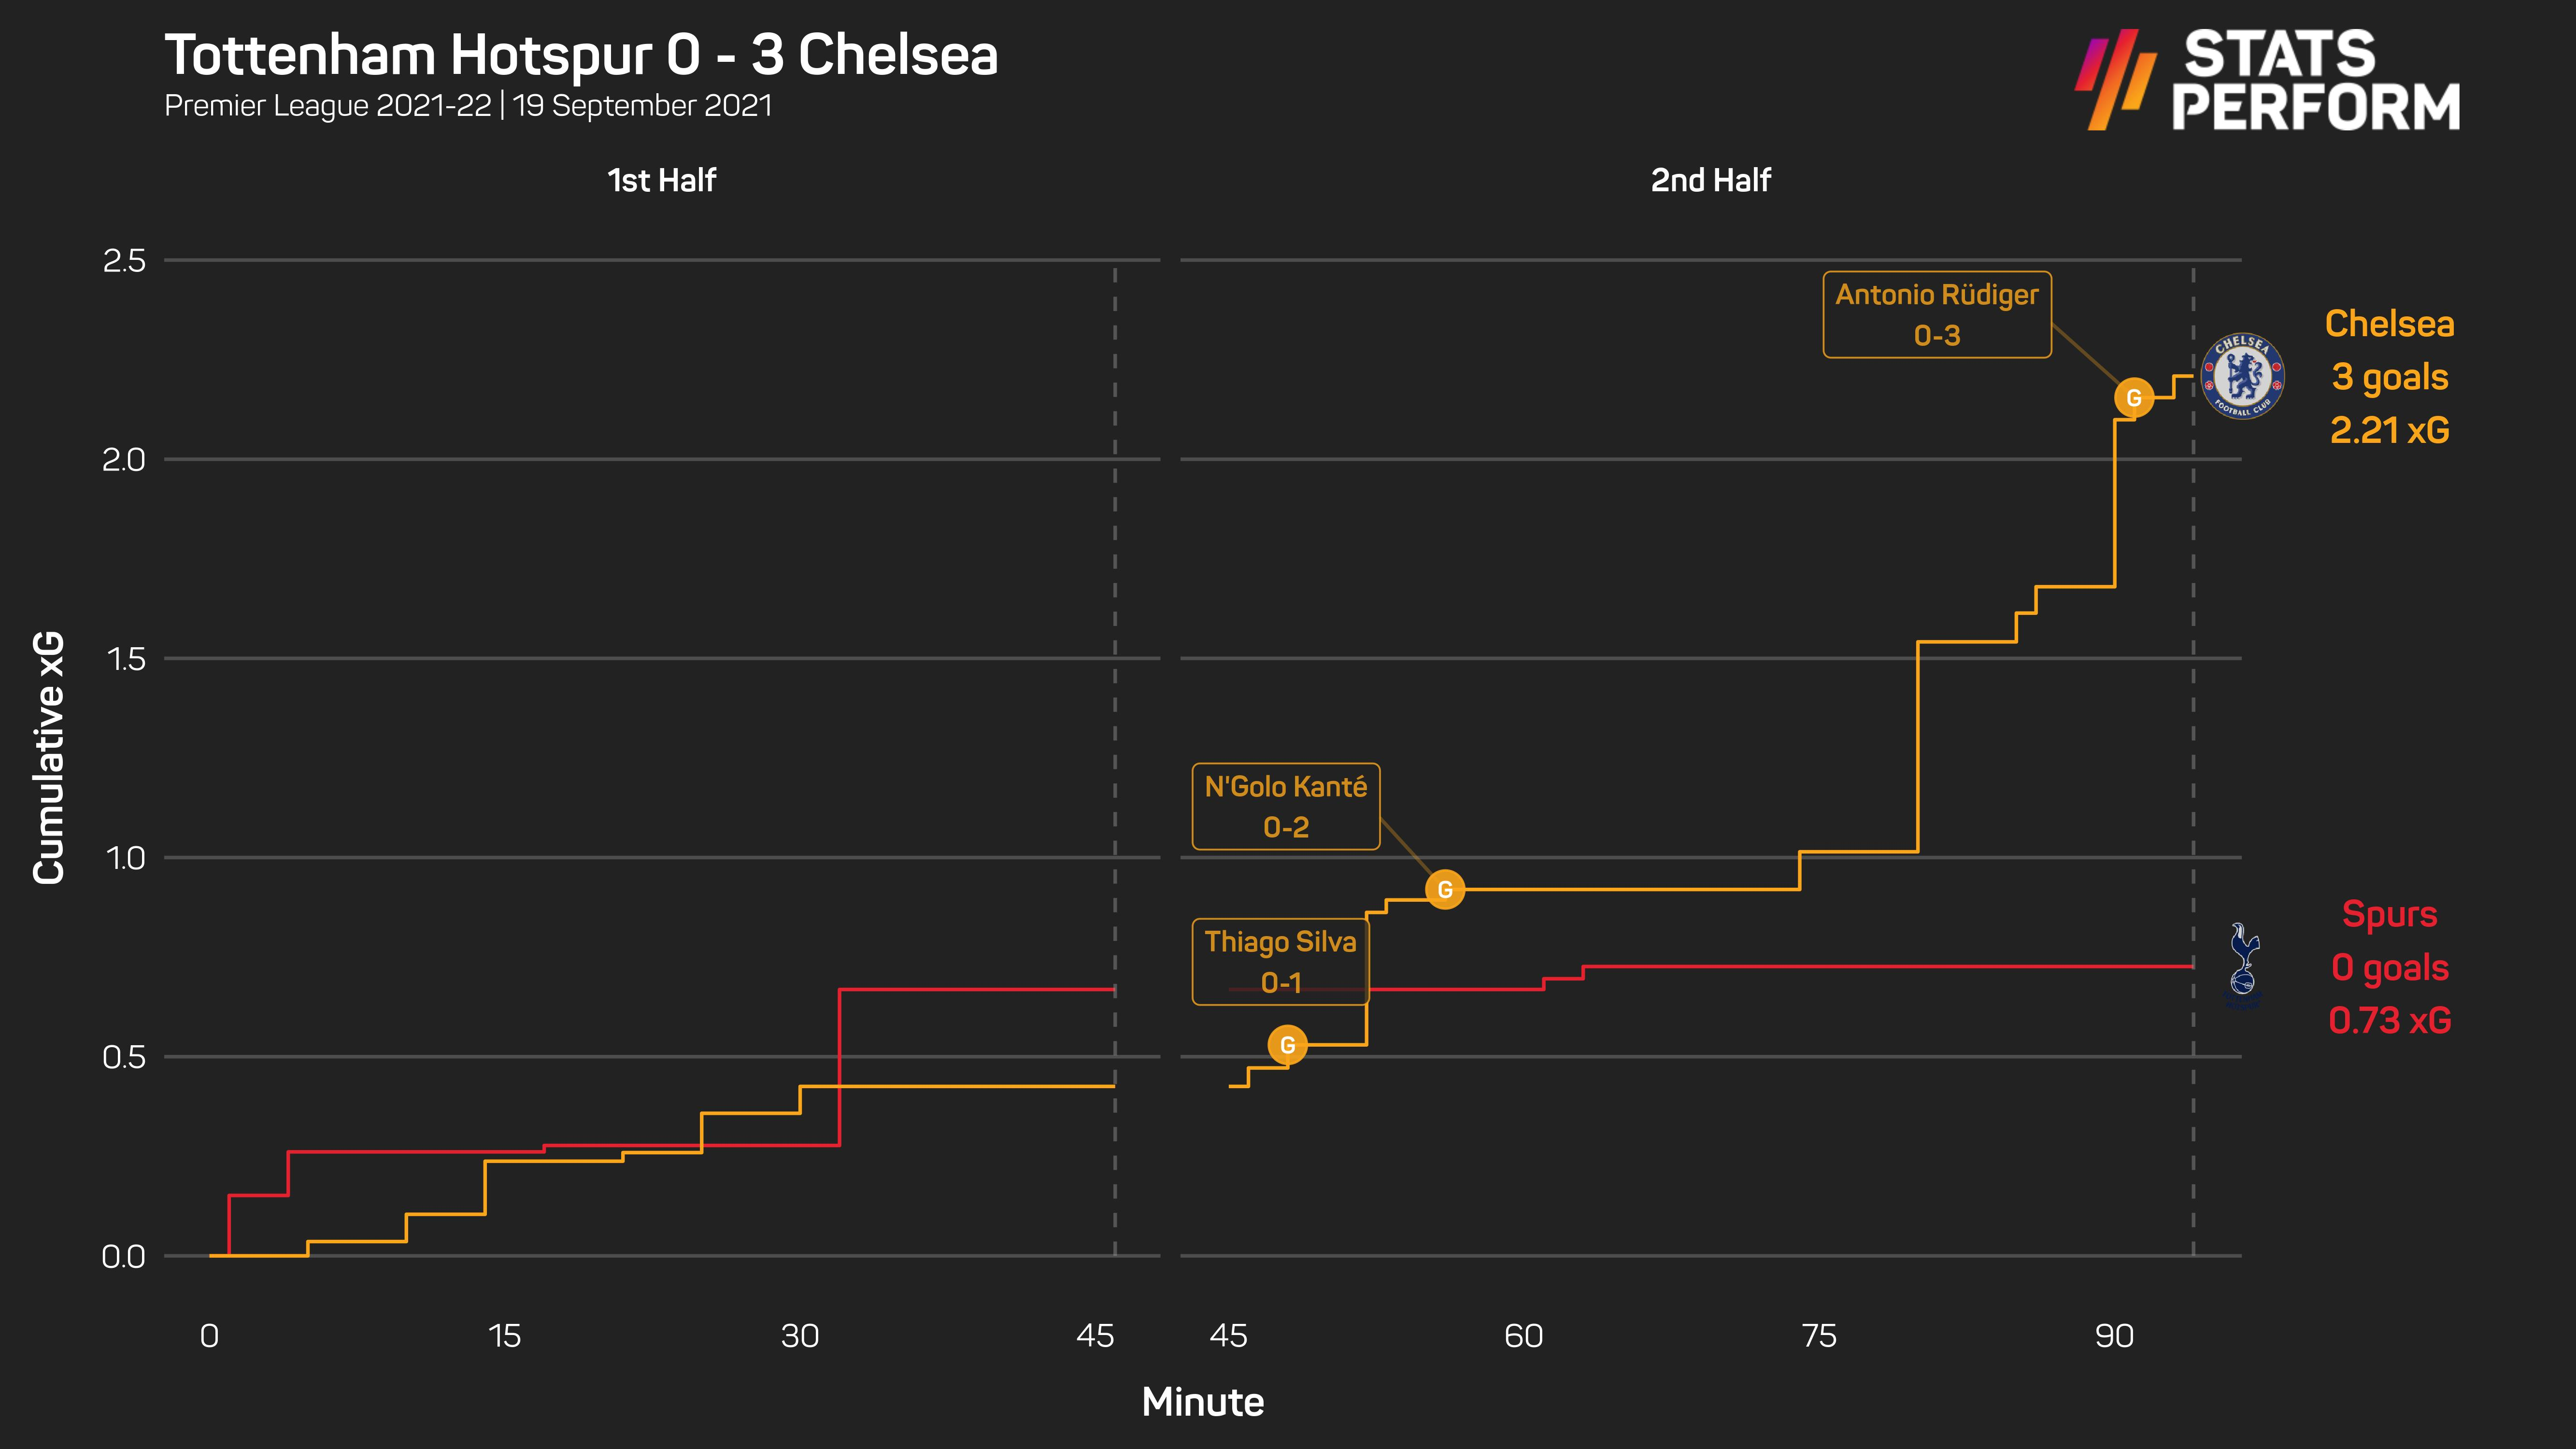 Chelsea recovered from a slow first half to humble Tottenham